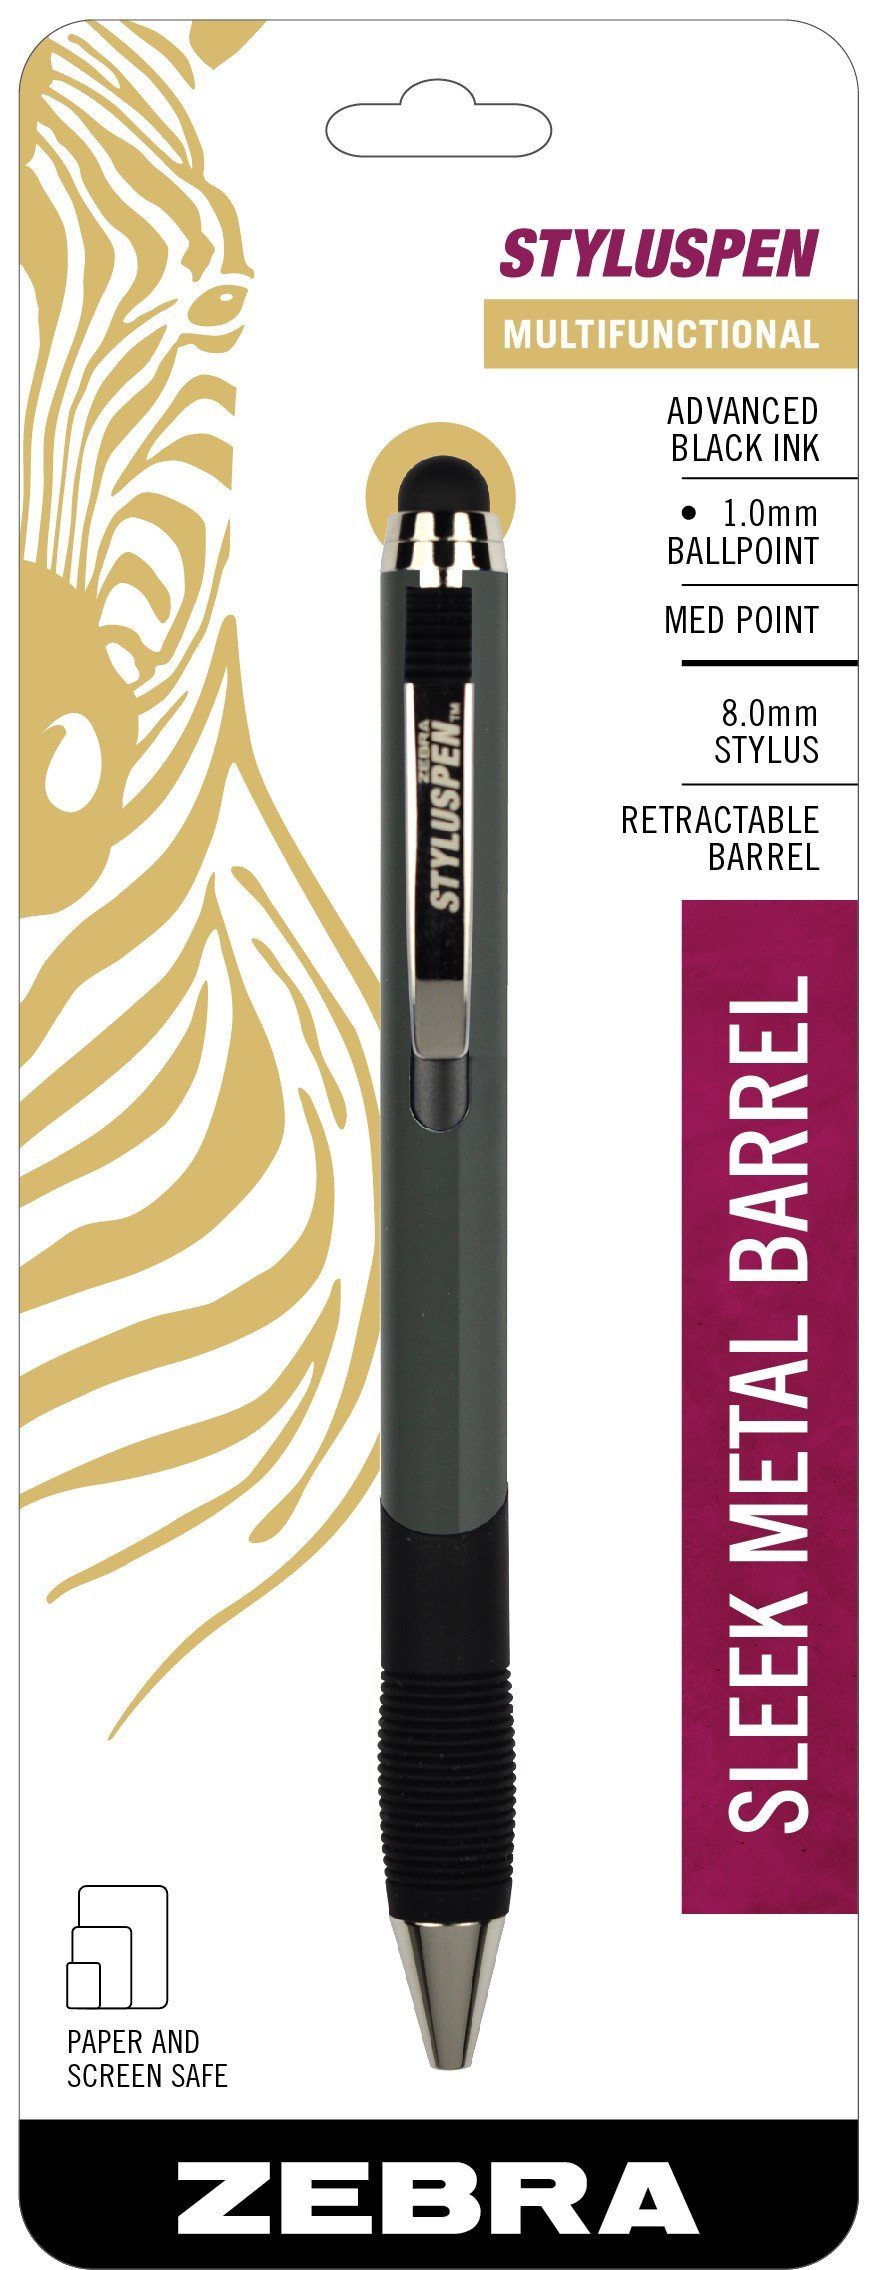 Zebra StylusPen Retractable Ballpoint Pen, Medium Point, 1.0mm, Black Ink, Slate Grey Barrel, 1-Count